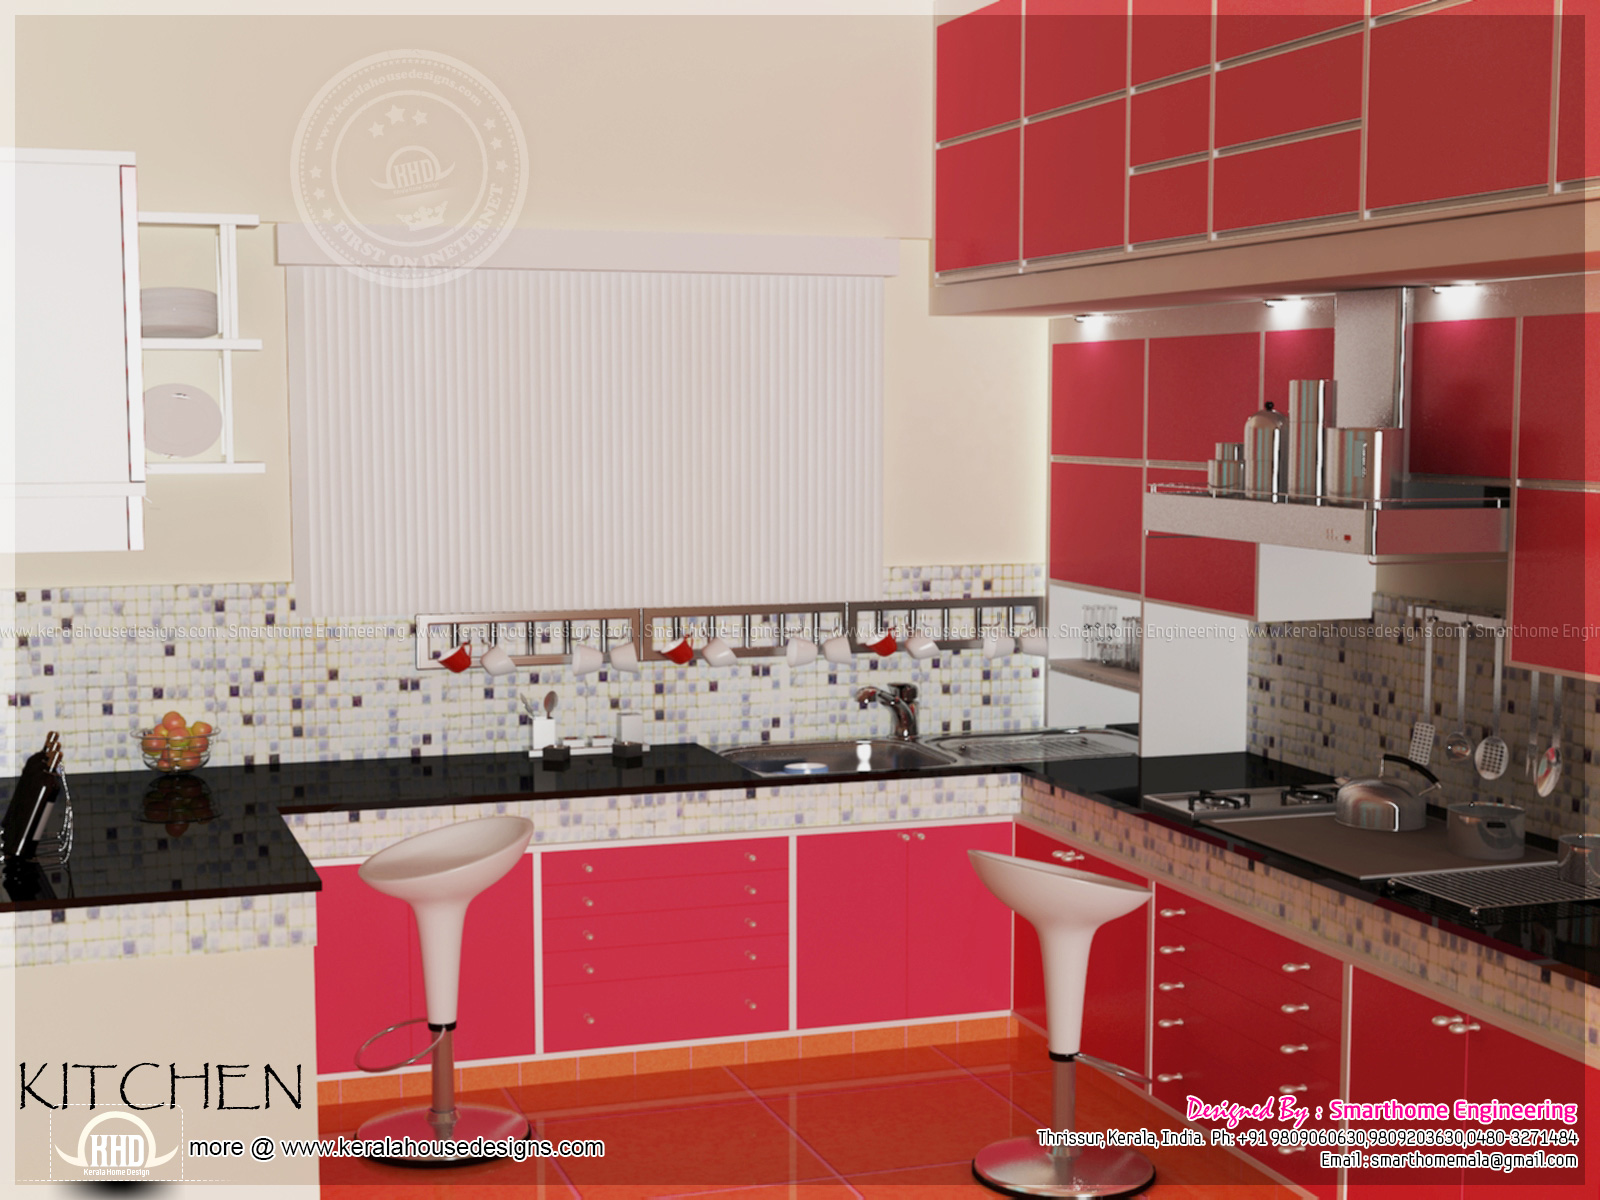 Home interior design by smarthome engineering thrissur for 1 room kitchen interior design